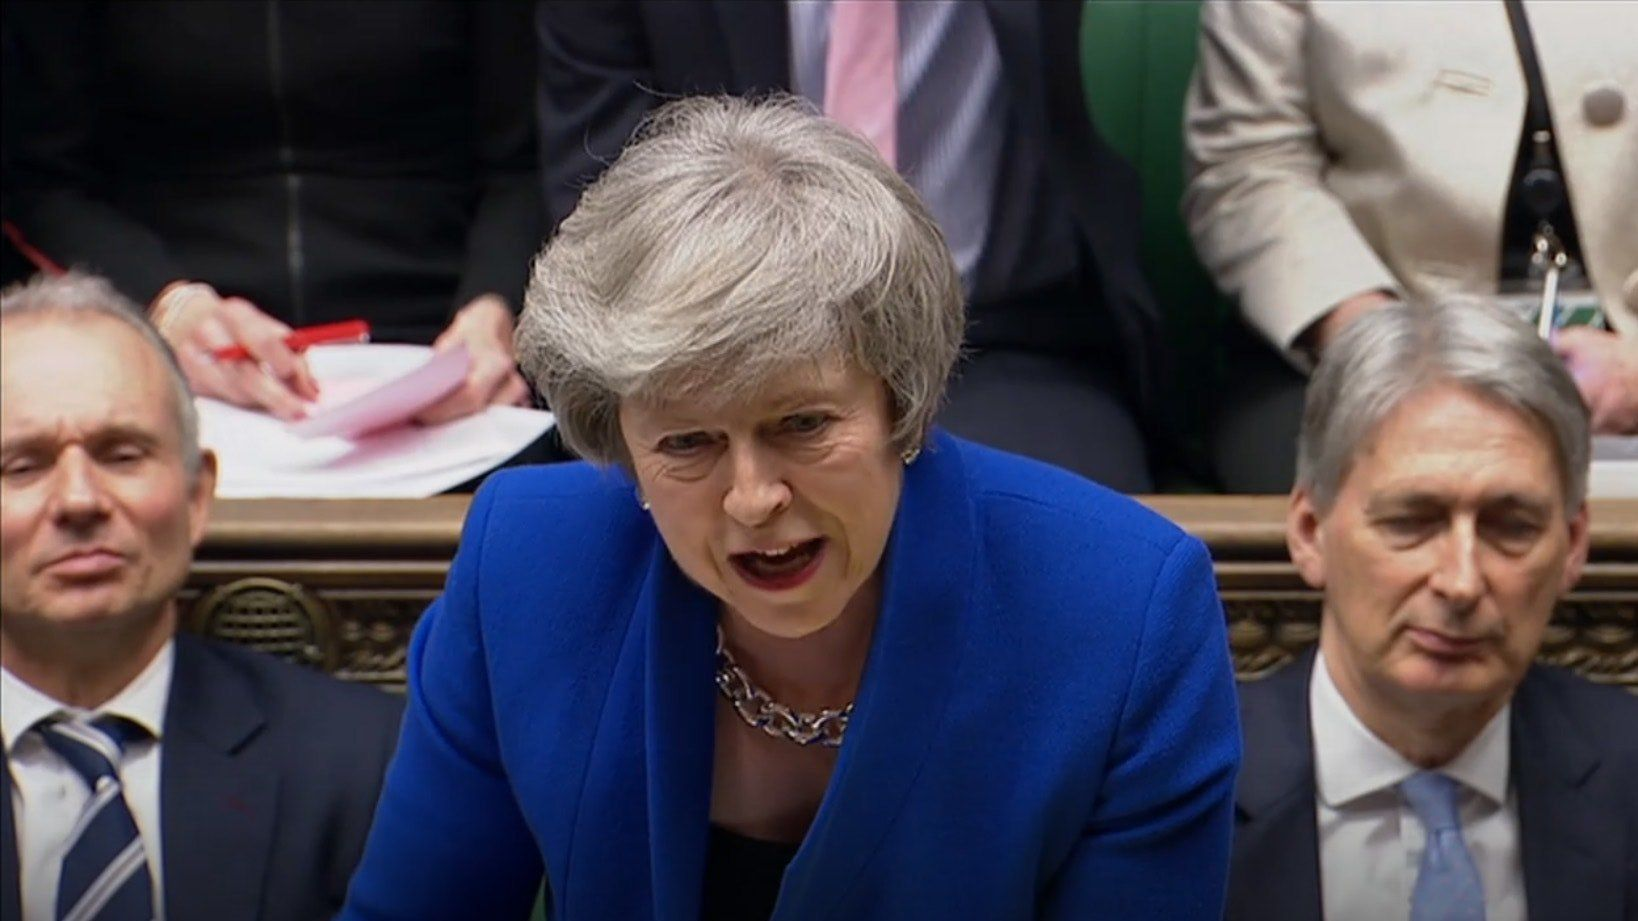 Theresa May narrowly survives no-confidence vote after crushing Brexit defeat